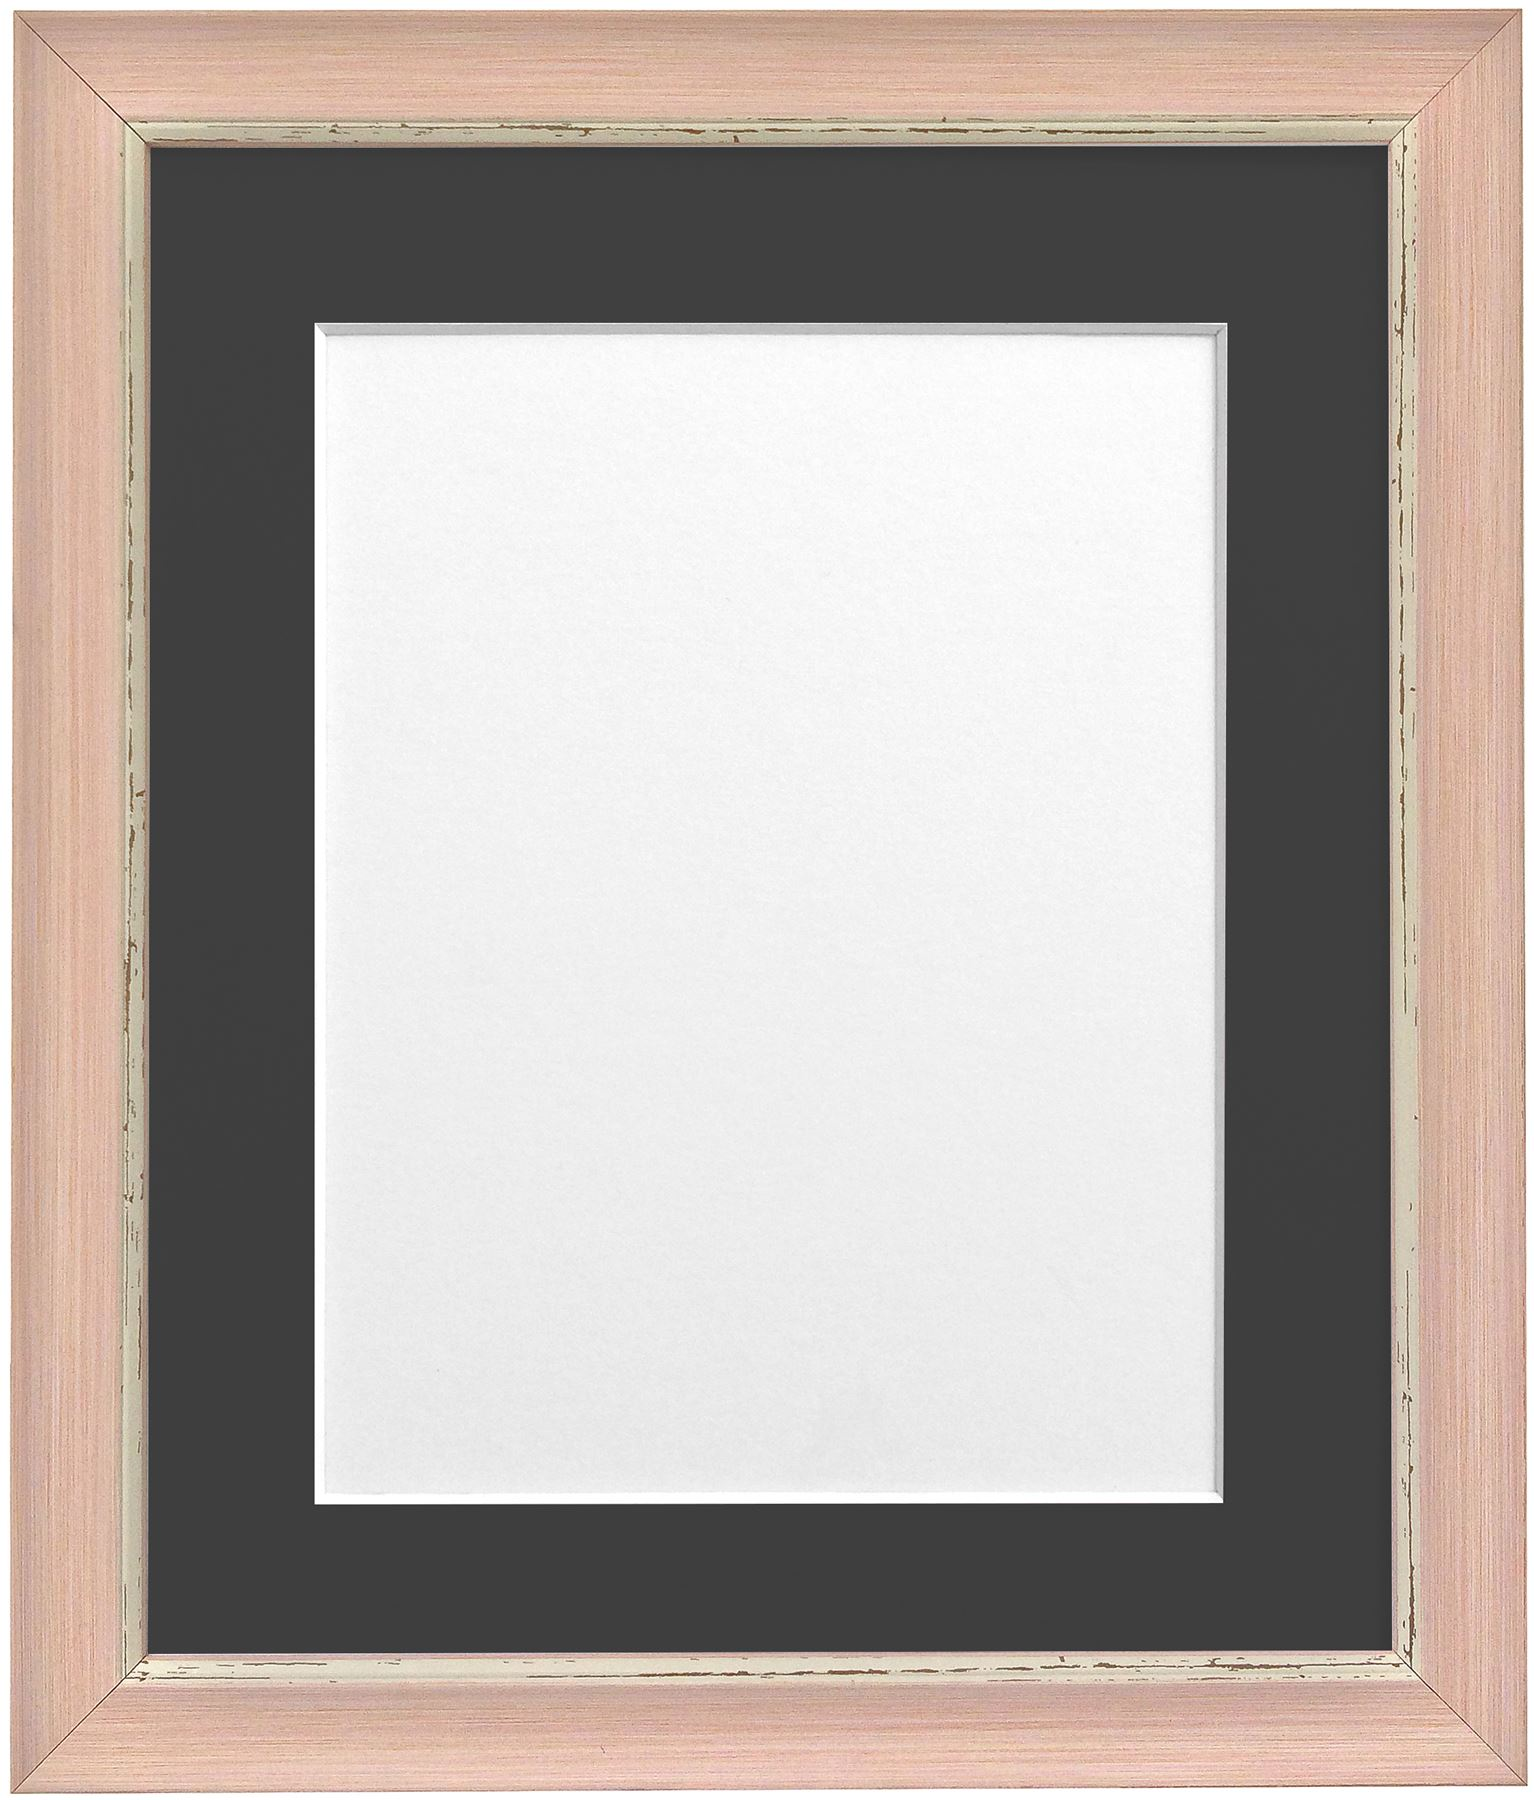 Frames by Post 40 X 50 Cm Plastic Glass Nordic Photo Frame for A3 ...